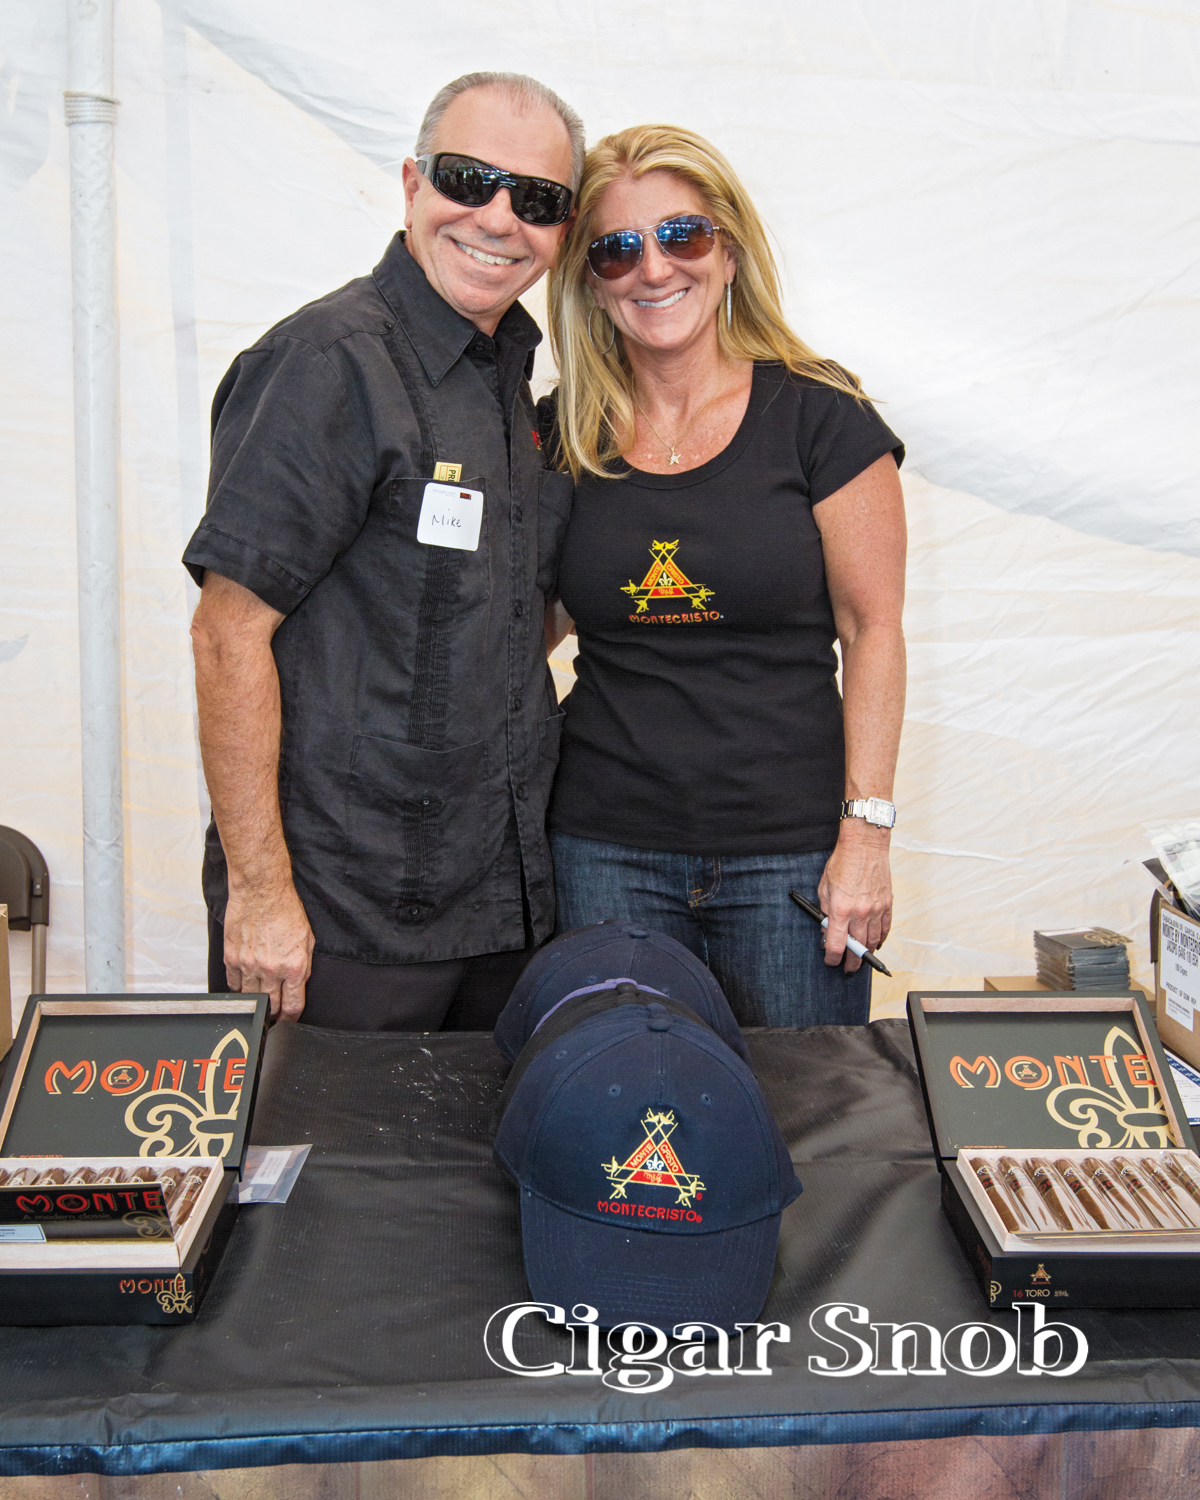 Altadis USA's Mike Ronessi and Jill Myers